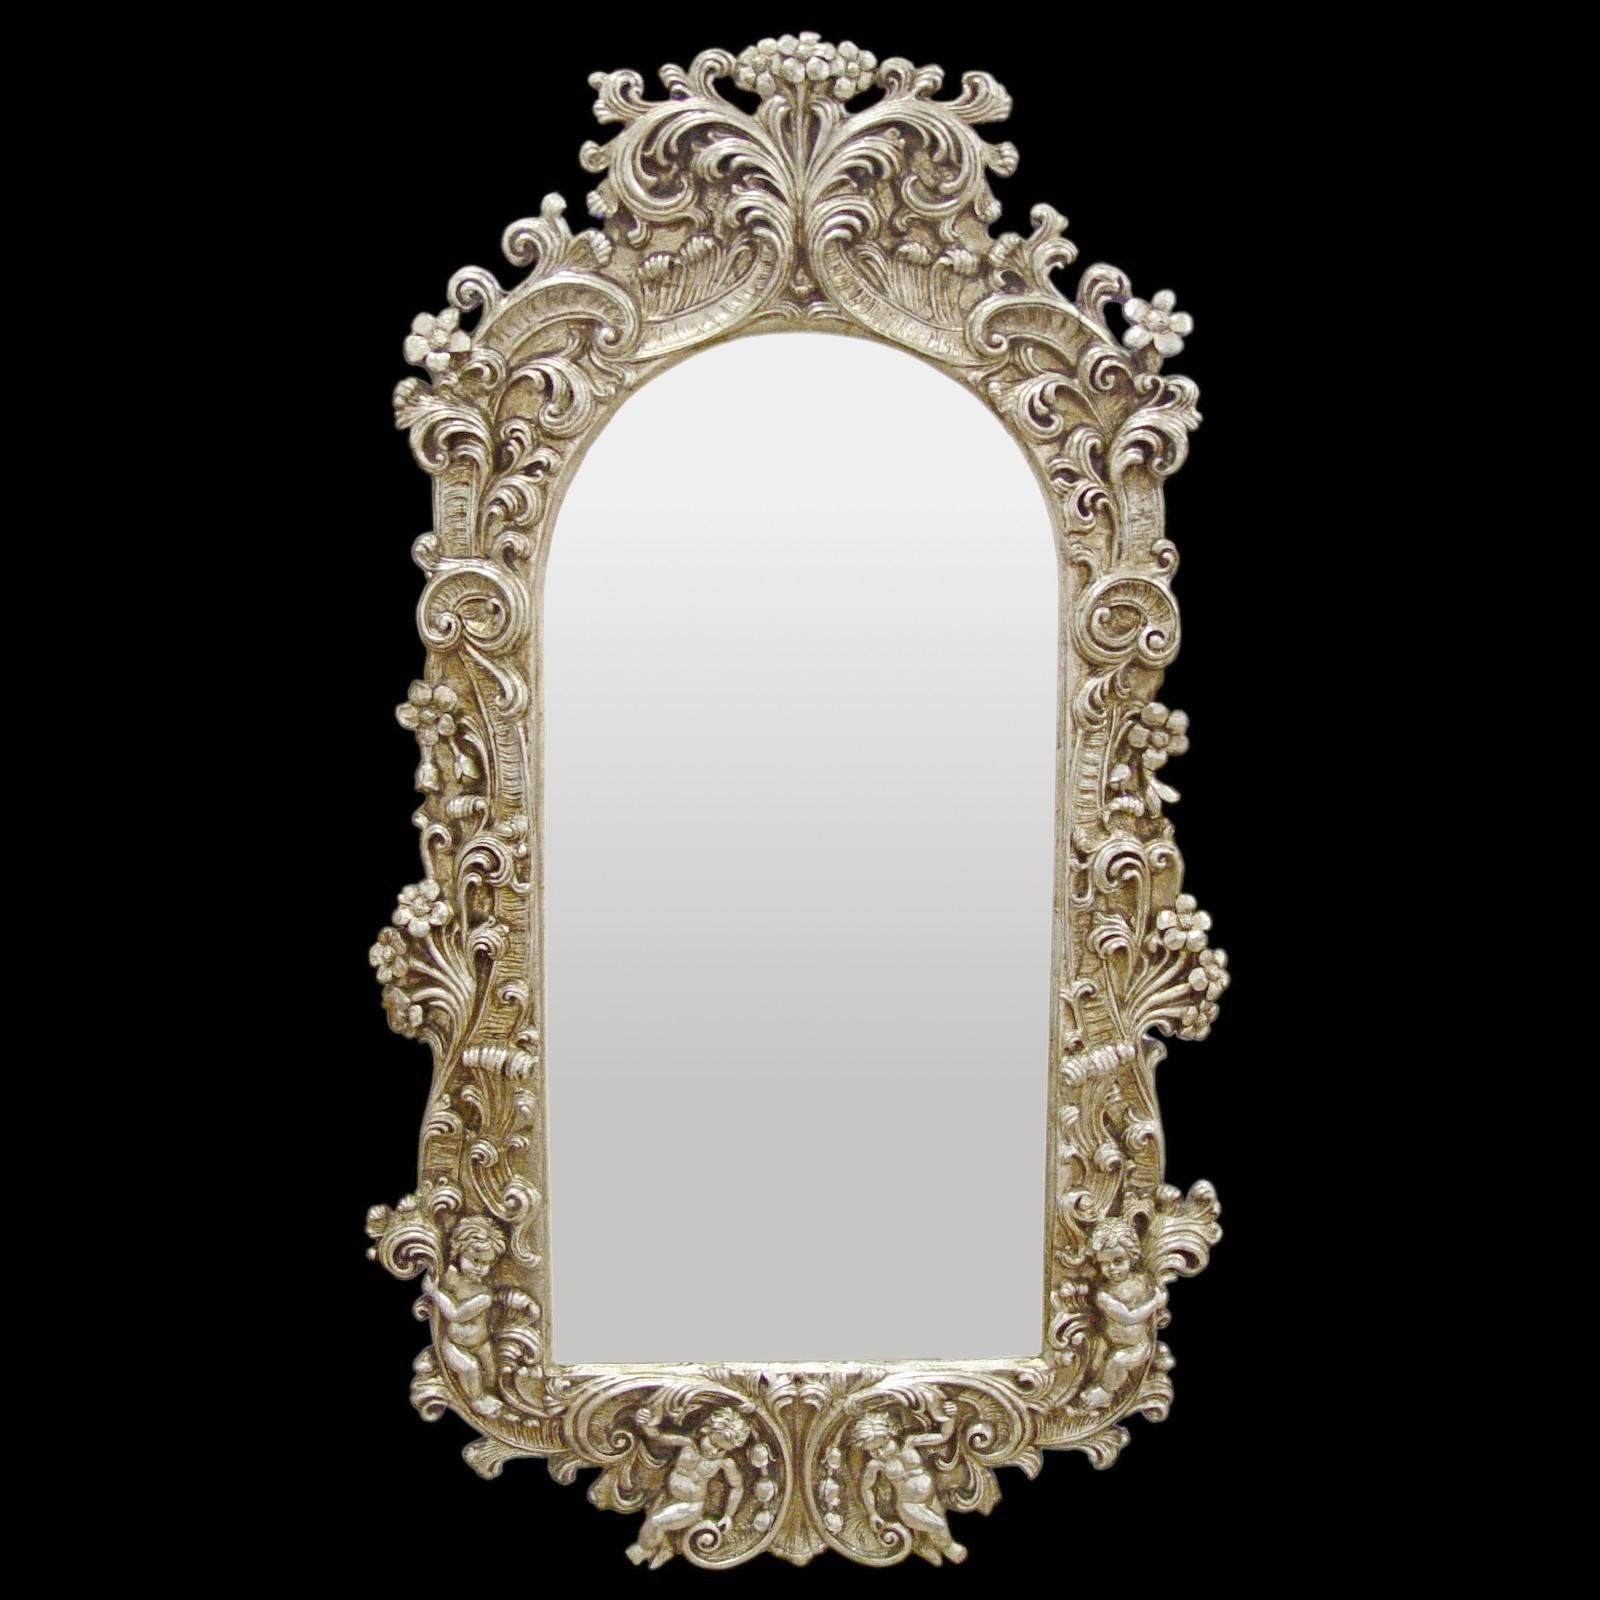 Wall Furniture Baroque Splendor Mirror Frame Baroque Silver Throughout Baroque Mirror Silver (Image 20 of 20)